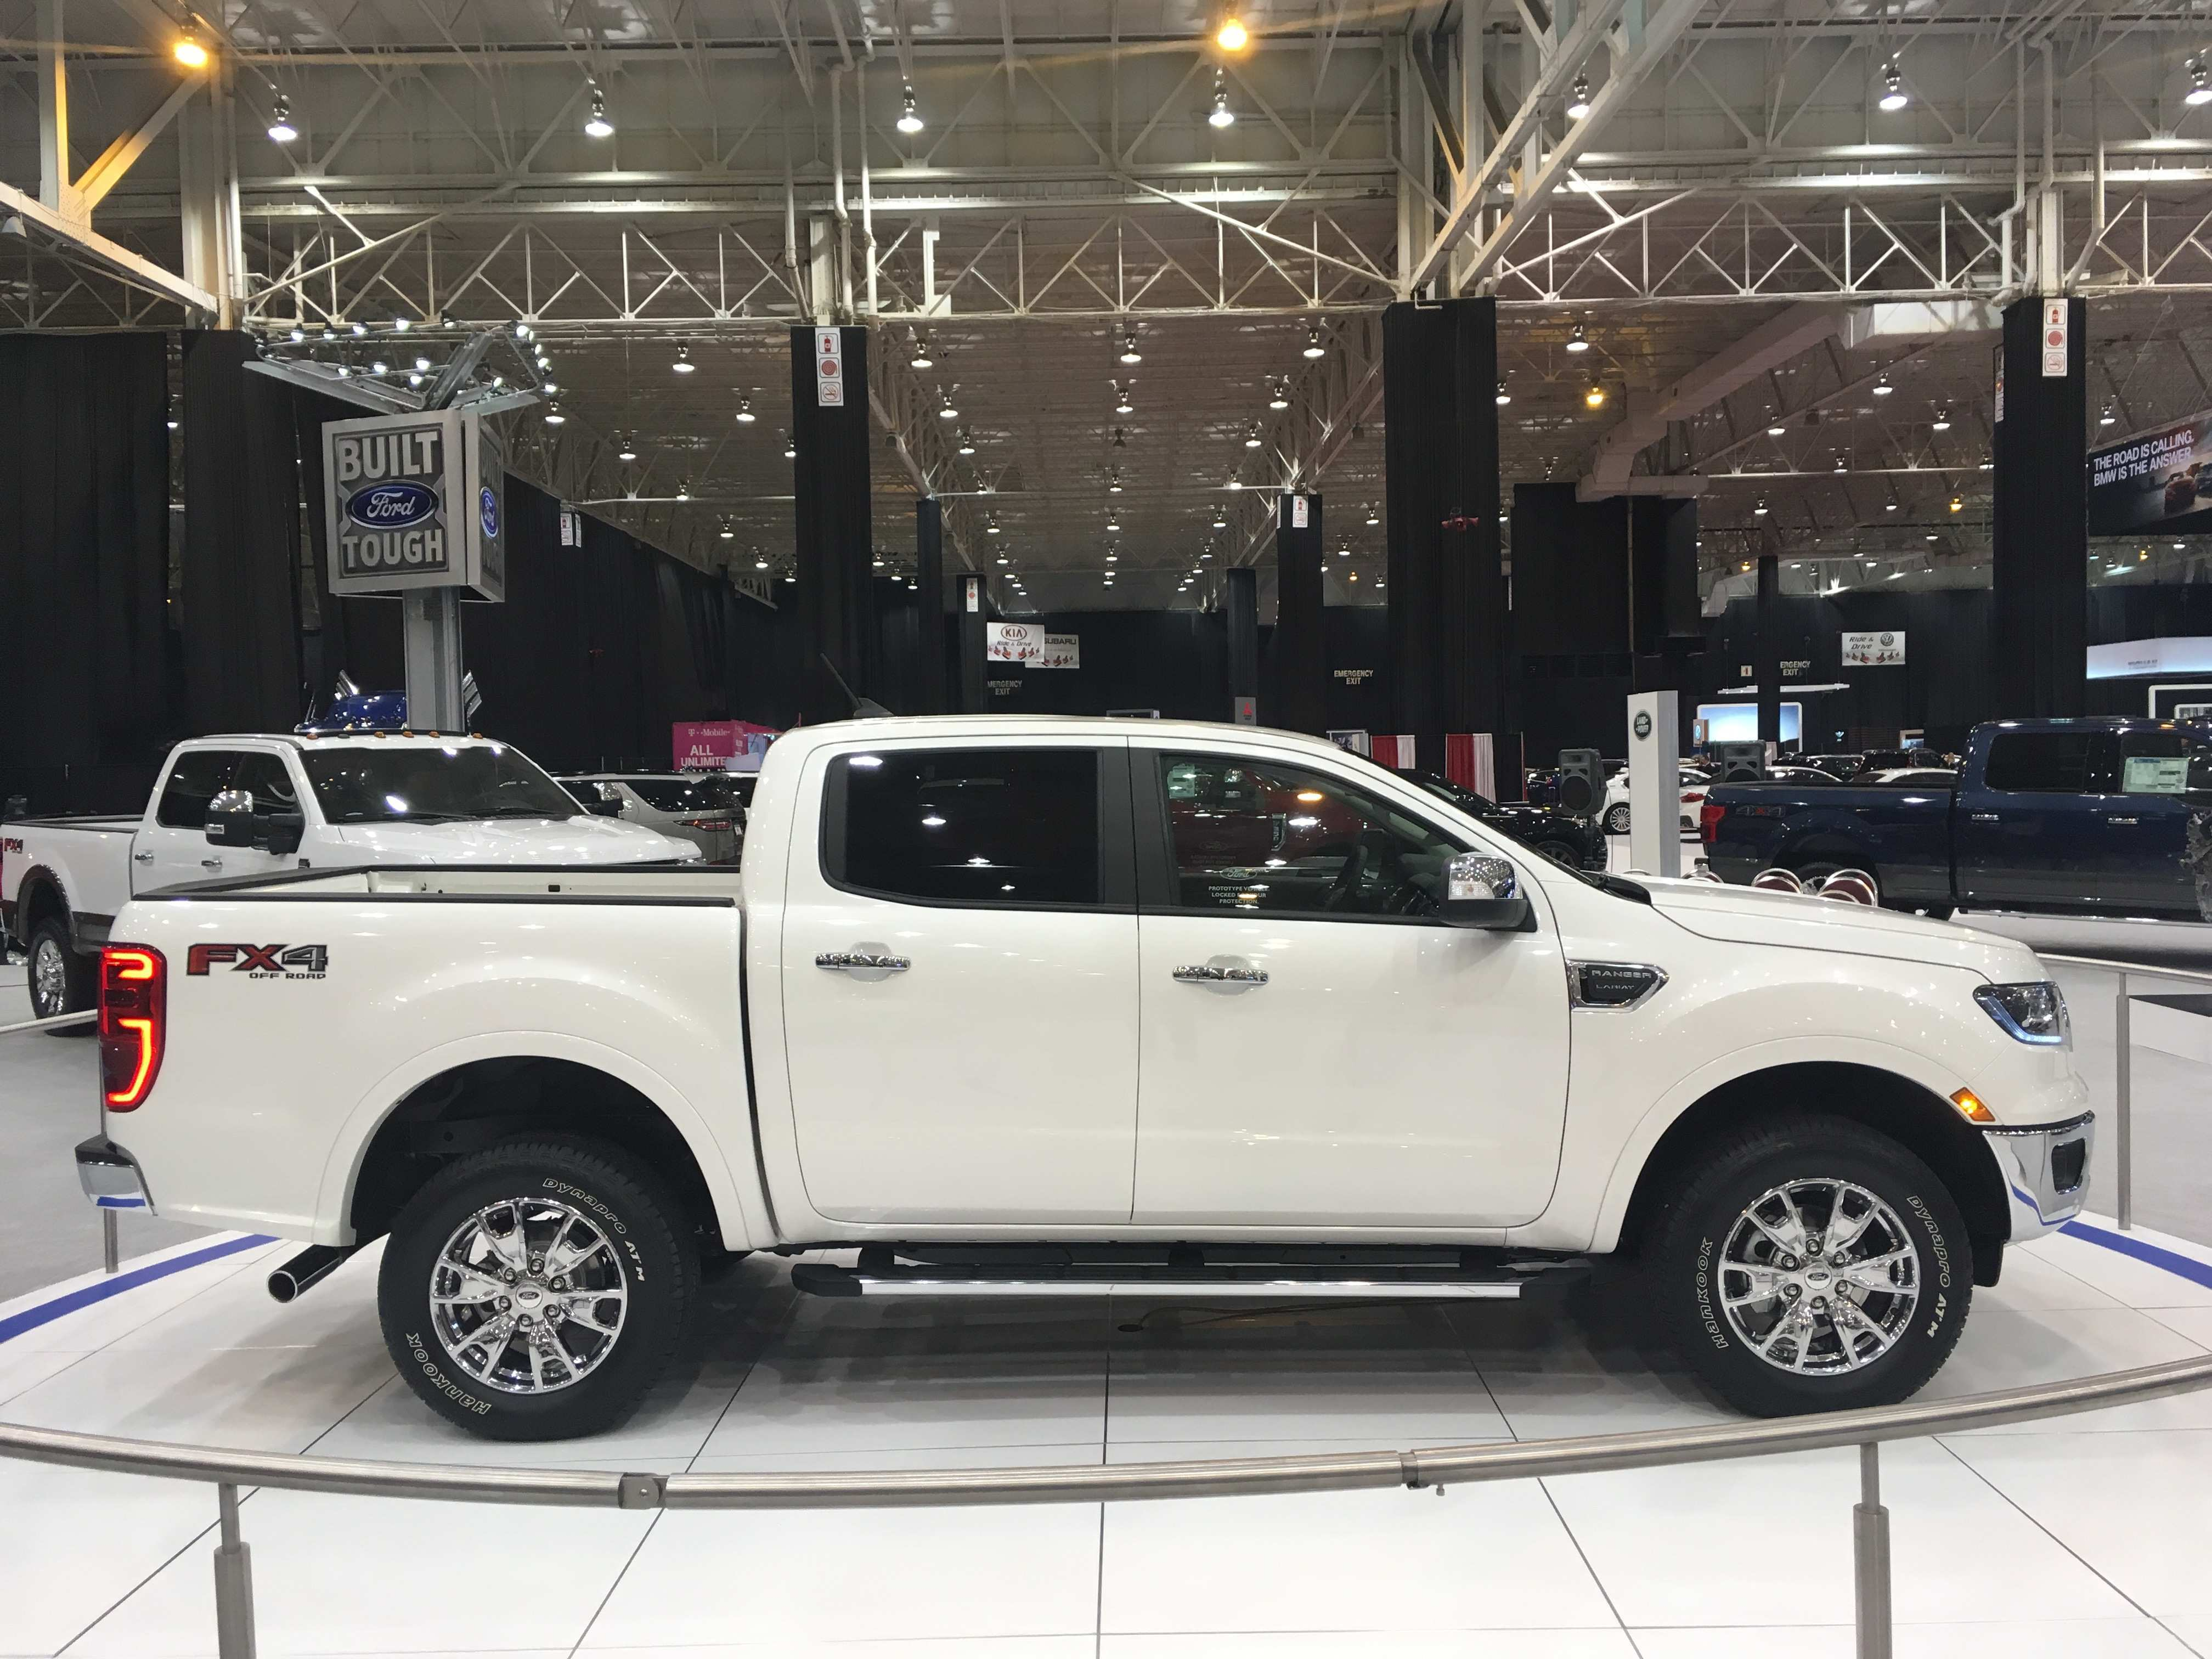 51 Great 2019 Ford Ranger Auto Show Model with 2019 Ford Ranger Auto Show